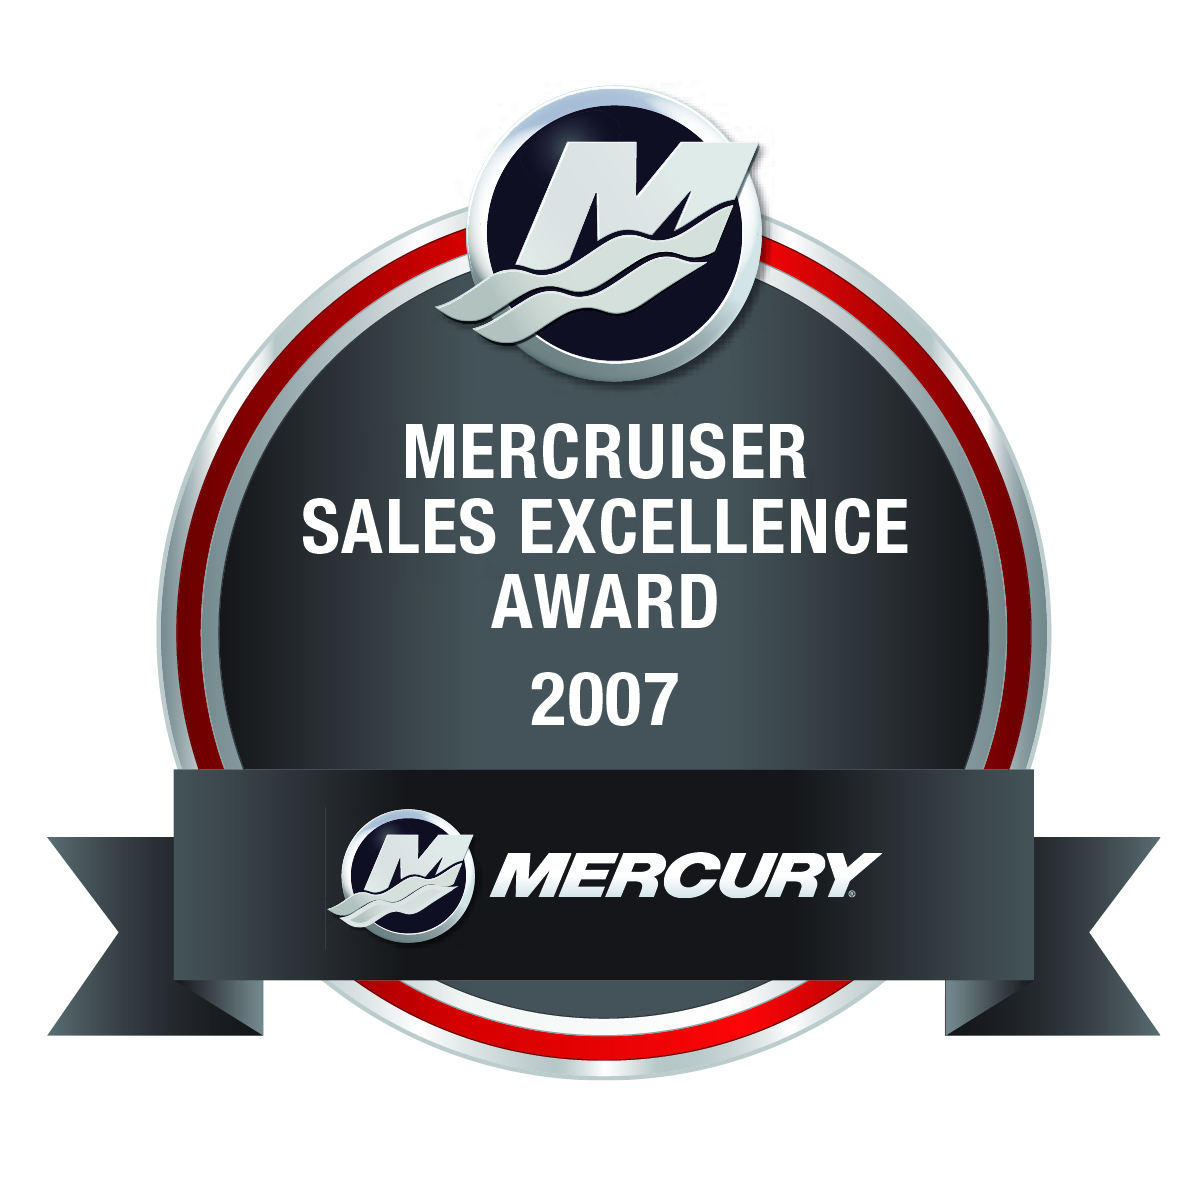 Mercruiser Sales Excellence award Hitech Marine 2007